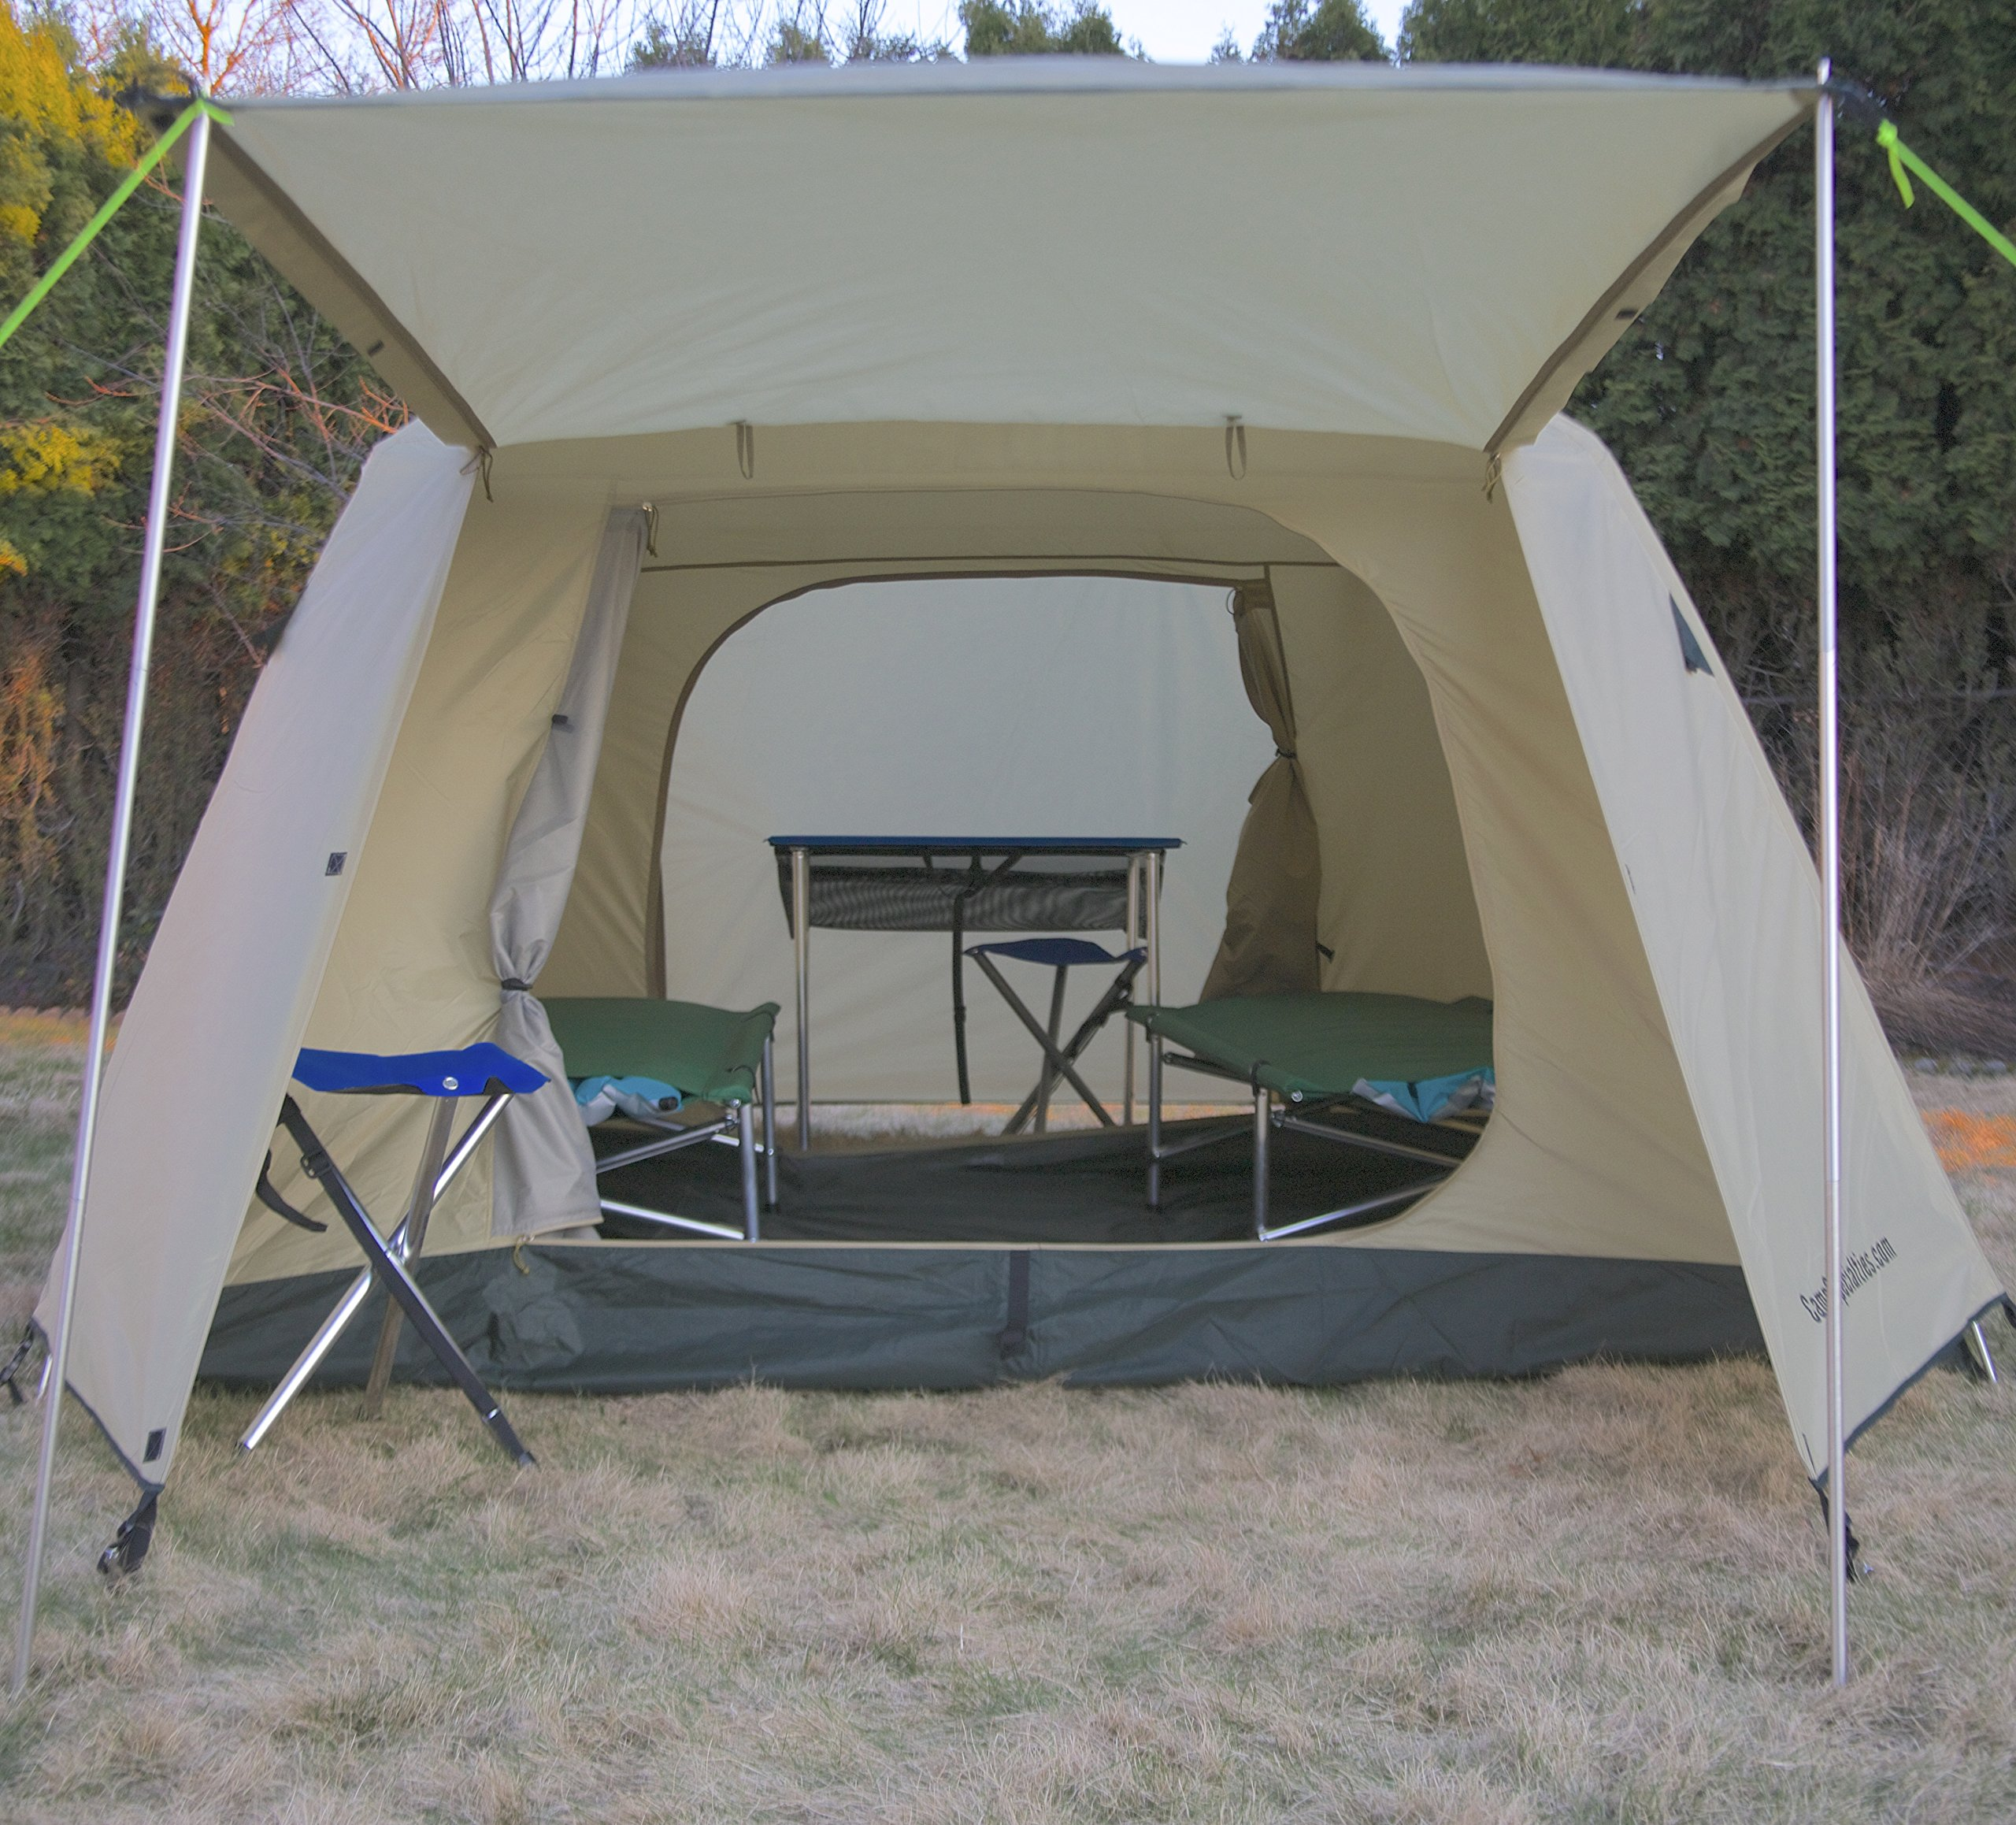 Camp Time Expedition Tent, Fast set-up, 100 square feet including vestibules, floor liner, awning poles, 7001-T6 aluminum, Designed for your cots-stools-tables,. by Camp Specialties (Image #5)